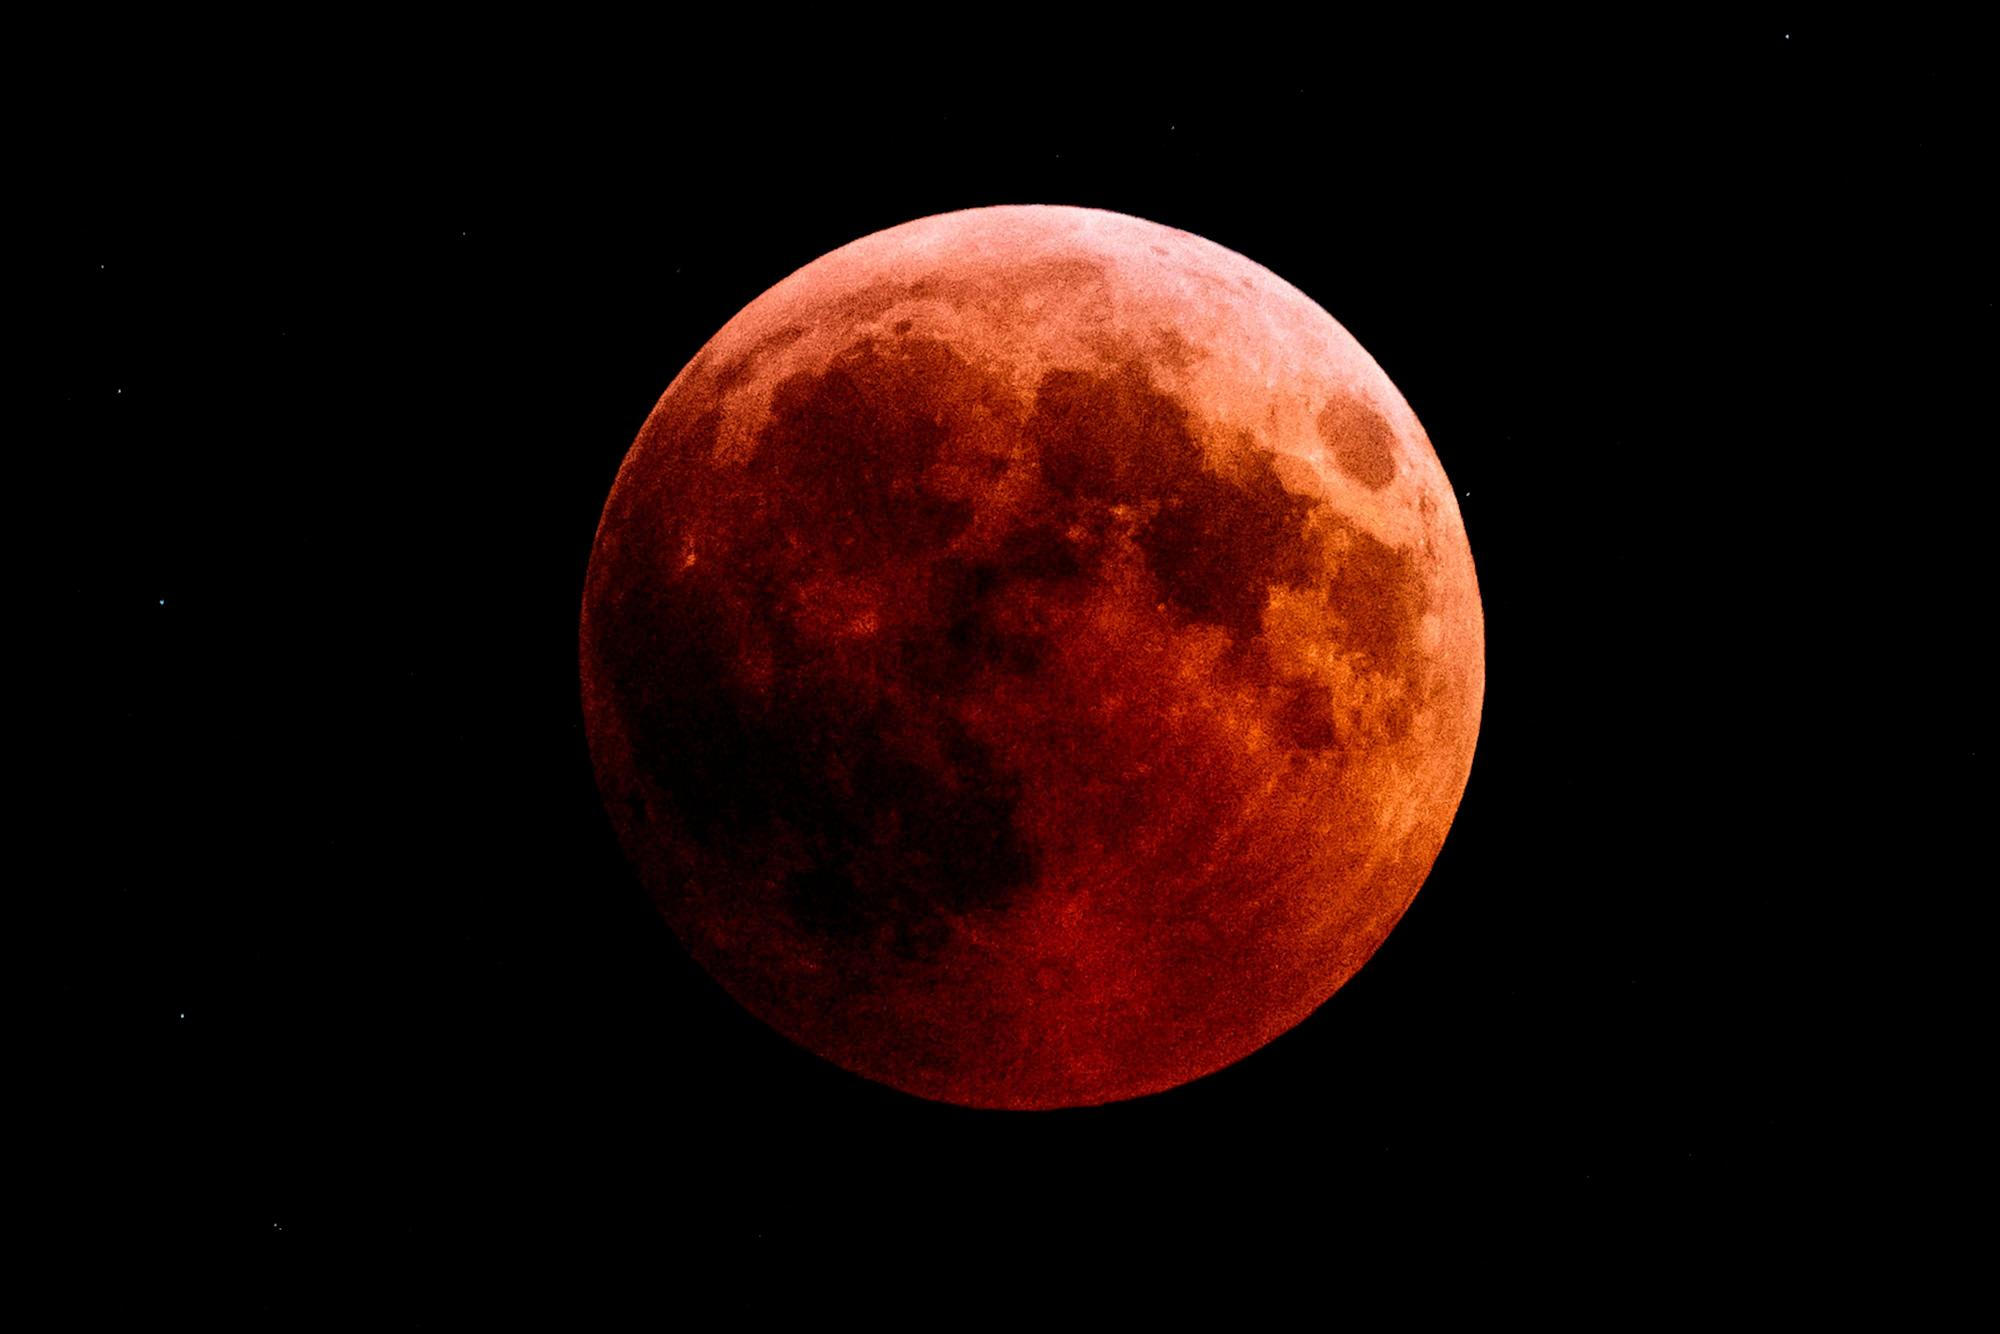 Super Blood Moon Lunar Eclipse Will be Visible in U.S. on May 26